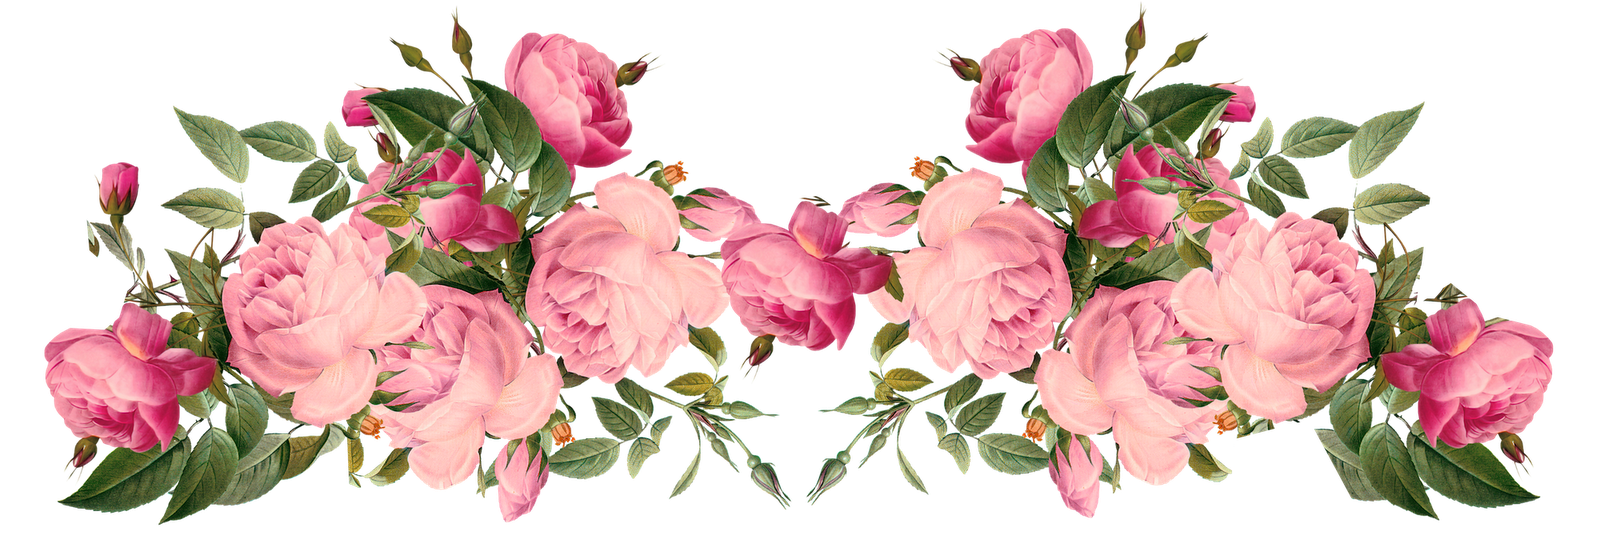 Free clipart pink rose hair peice w no background clip royalty free library Pink Rose Borders | free pink roses border, vintage style | { Frames ... clip royalty free library